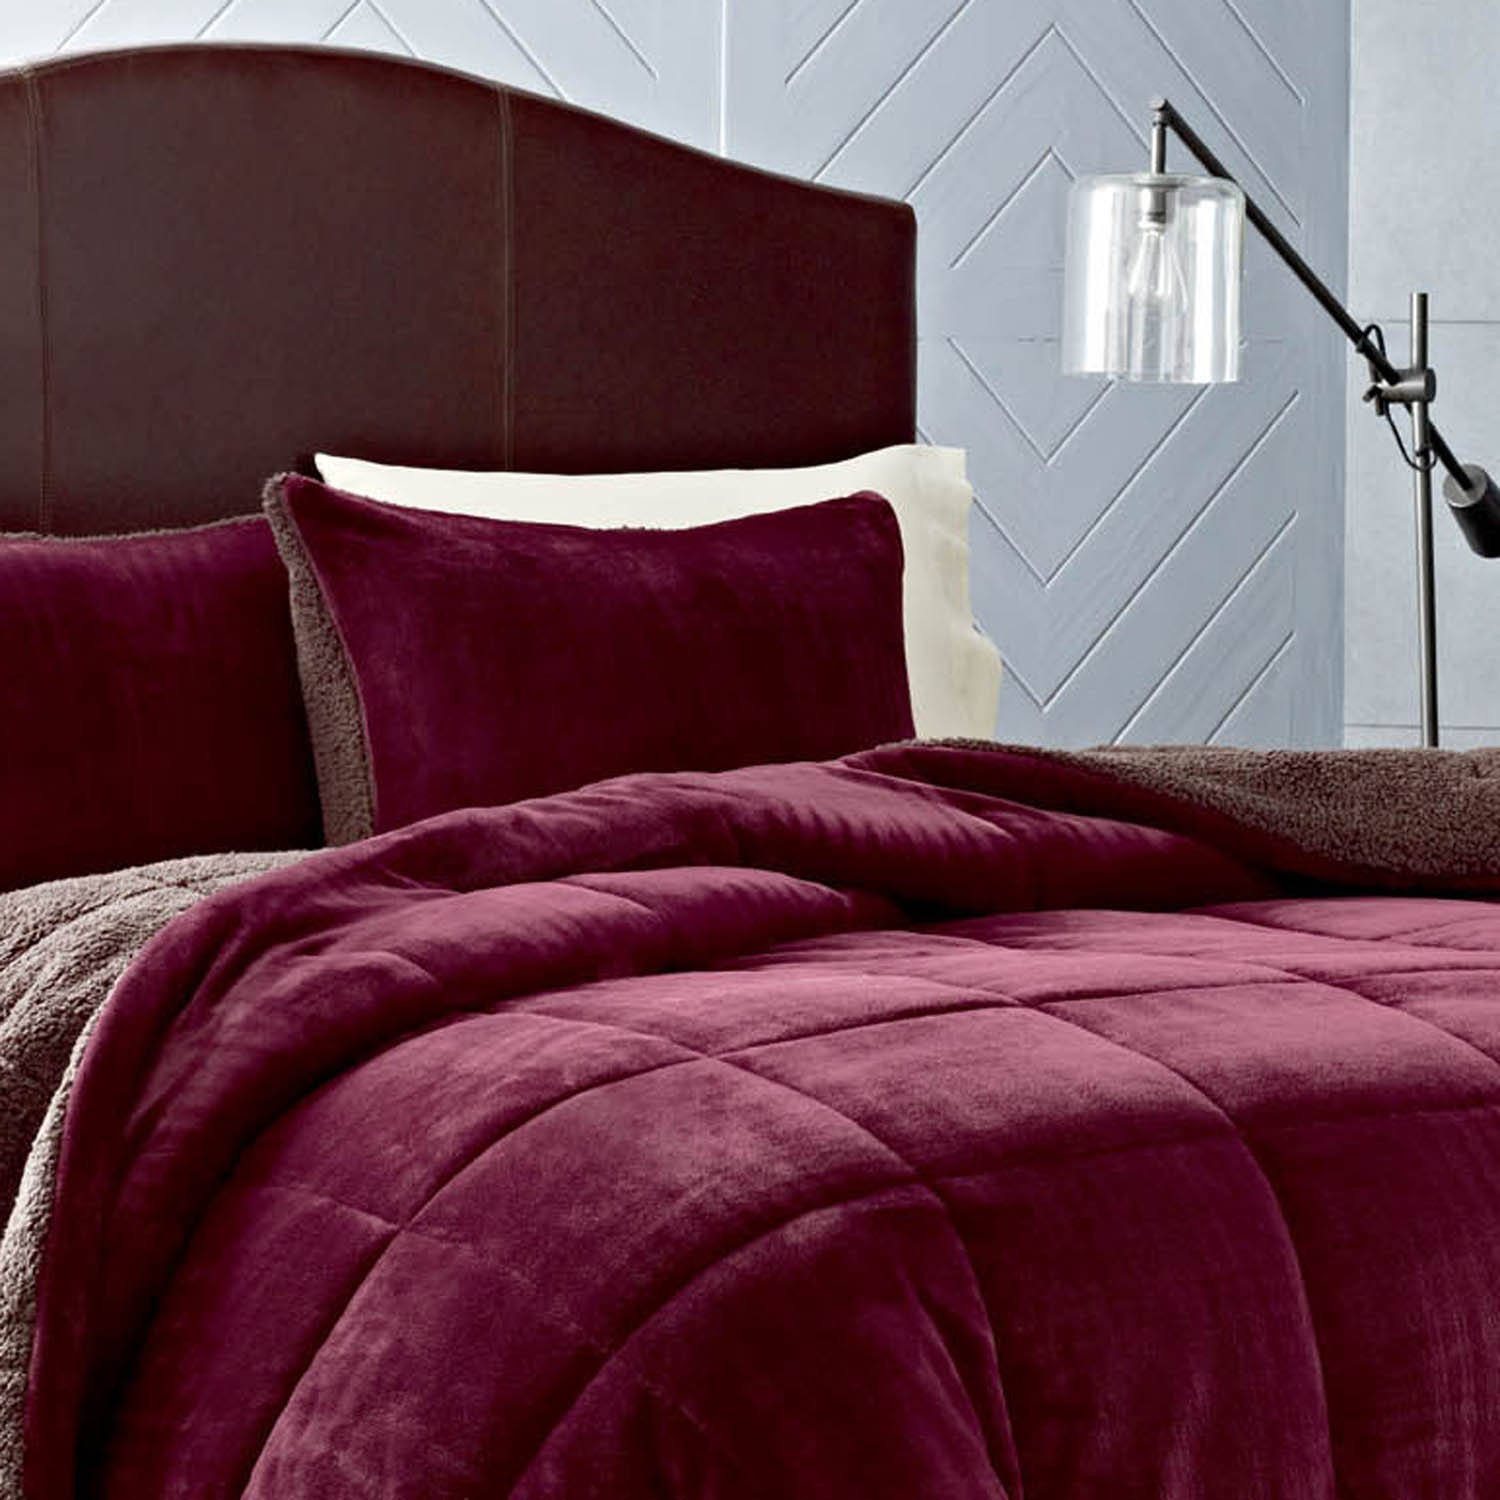 residence red cover eddie your bed home bedding to aetherair surprising bauer with asli duvet decor regard covers sheets co quilts